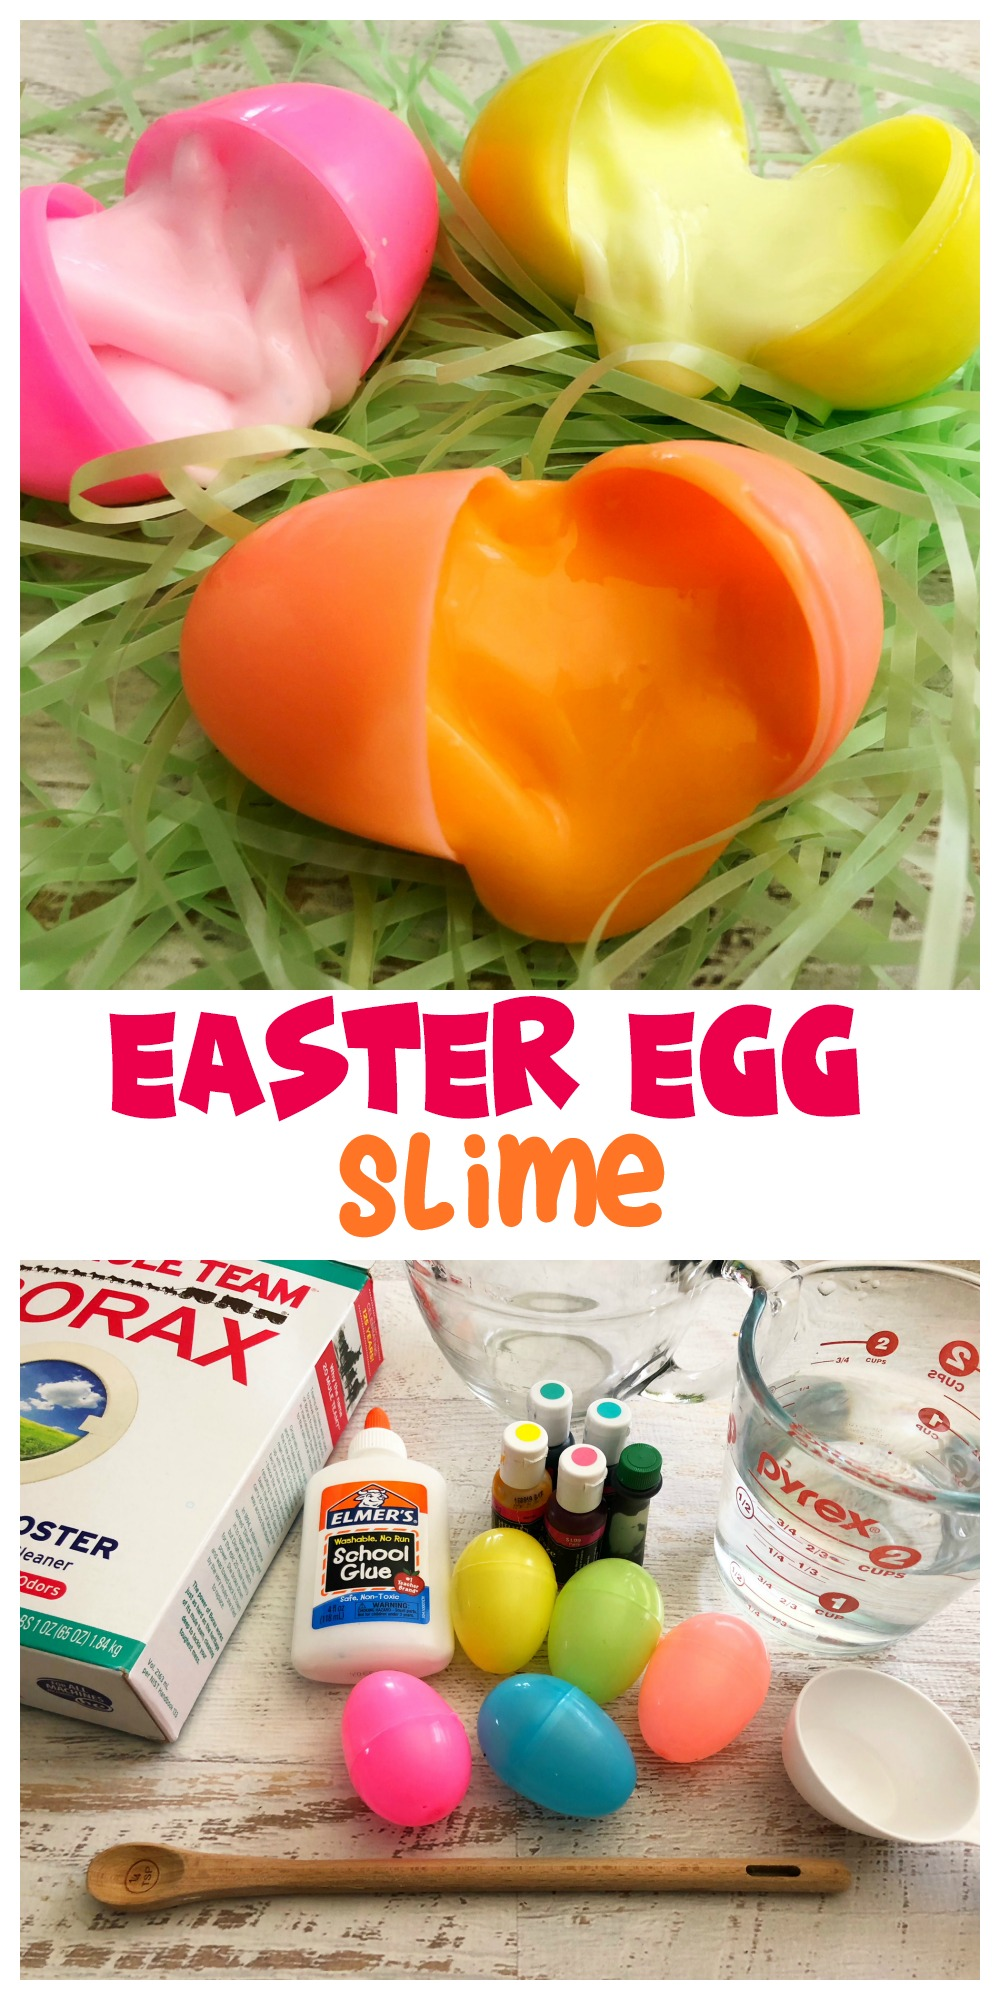 This easy Easter Egg Slime recipe is good for hours of sensory fun! Make as many colors as you like and have a blast mixing & matching.